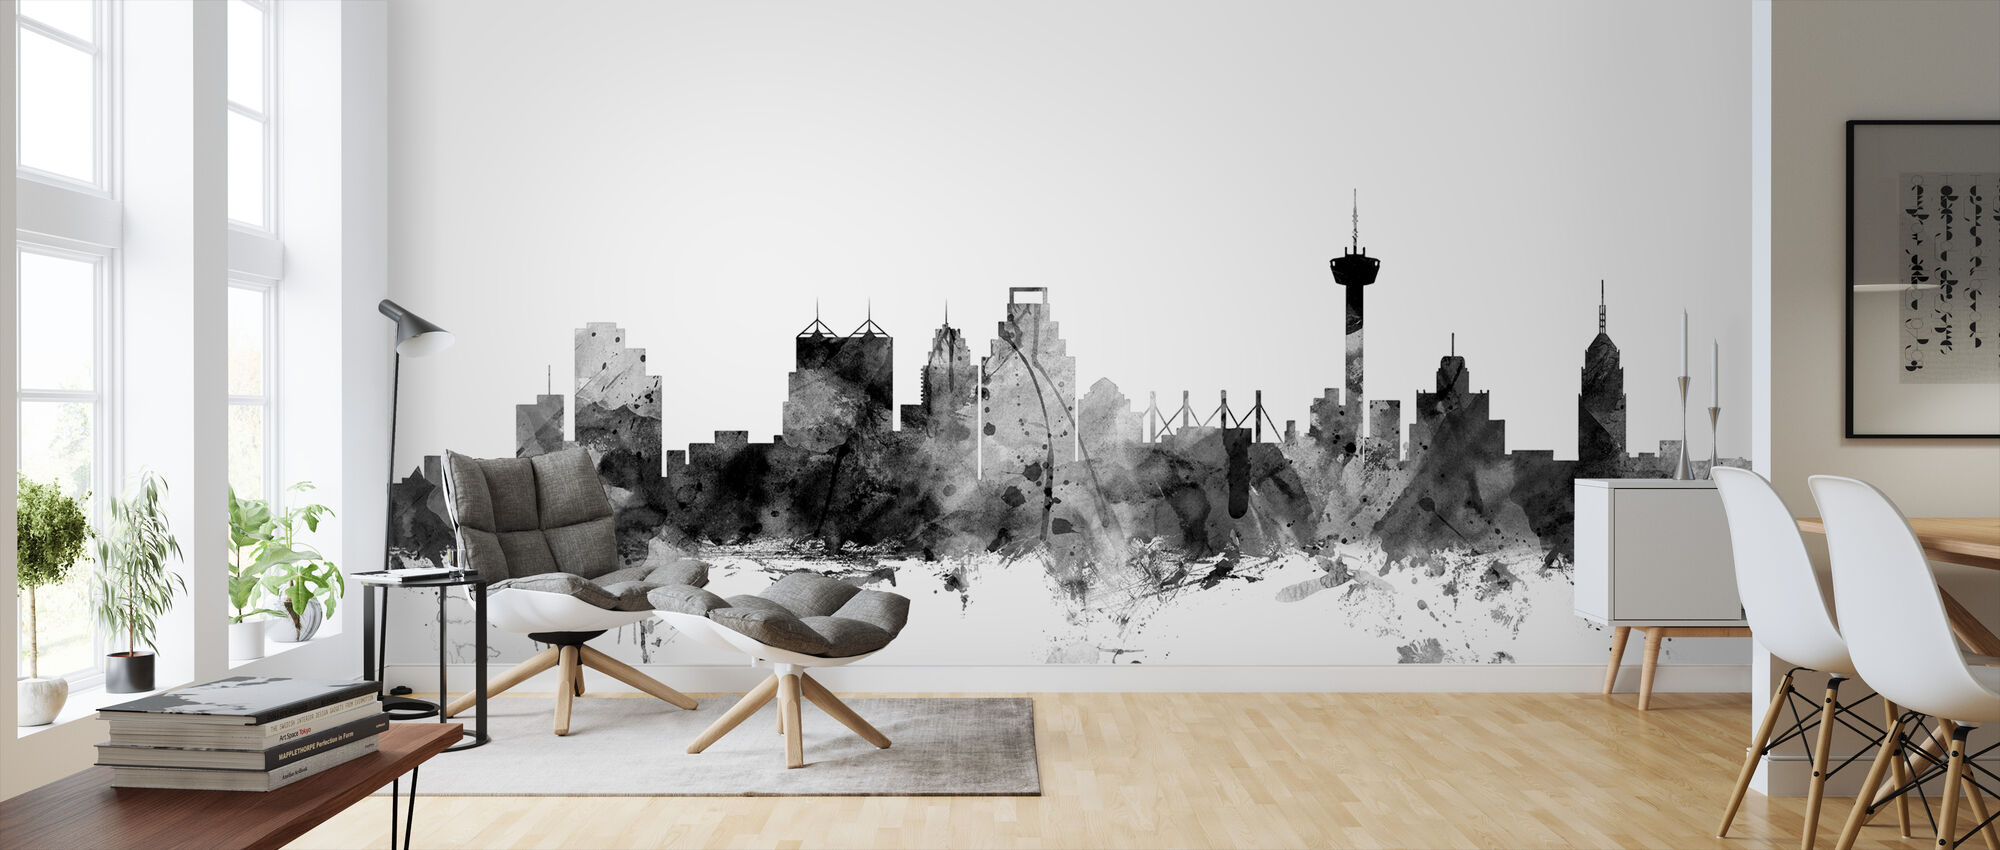 San Antonio Texas Skyline Black - Wallpaper - Living Room